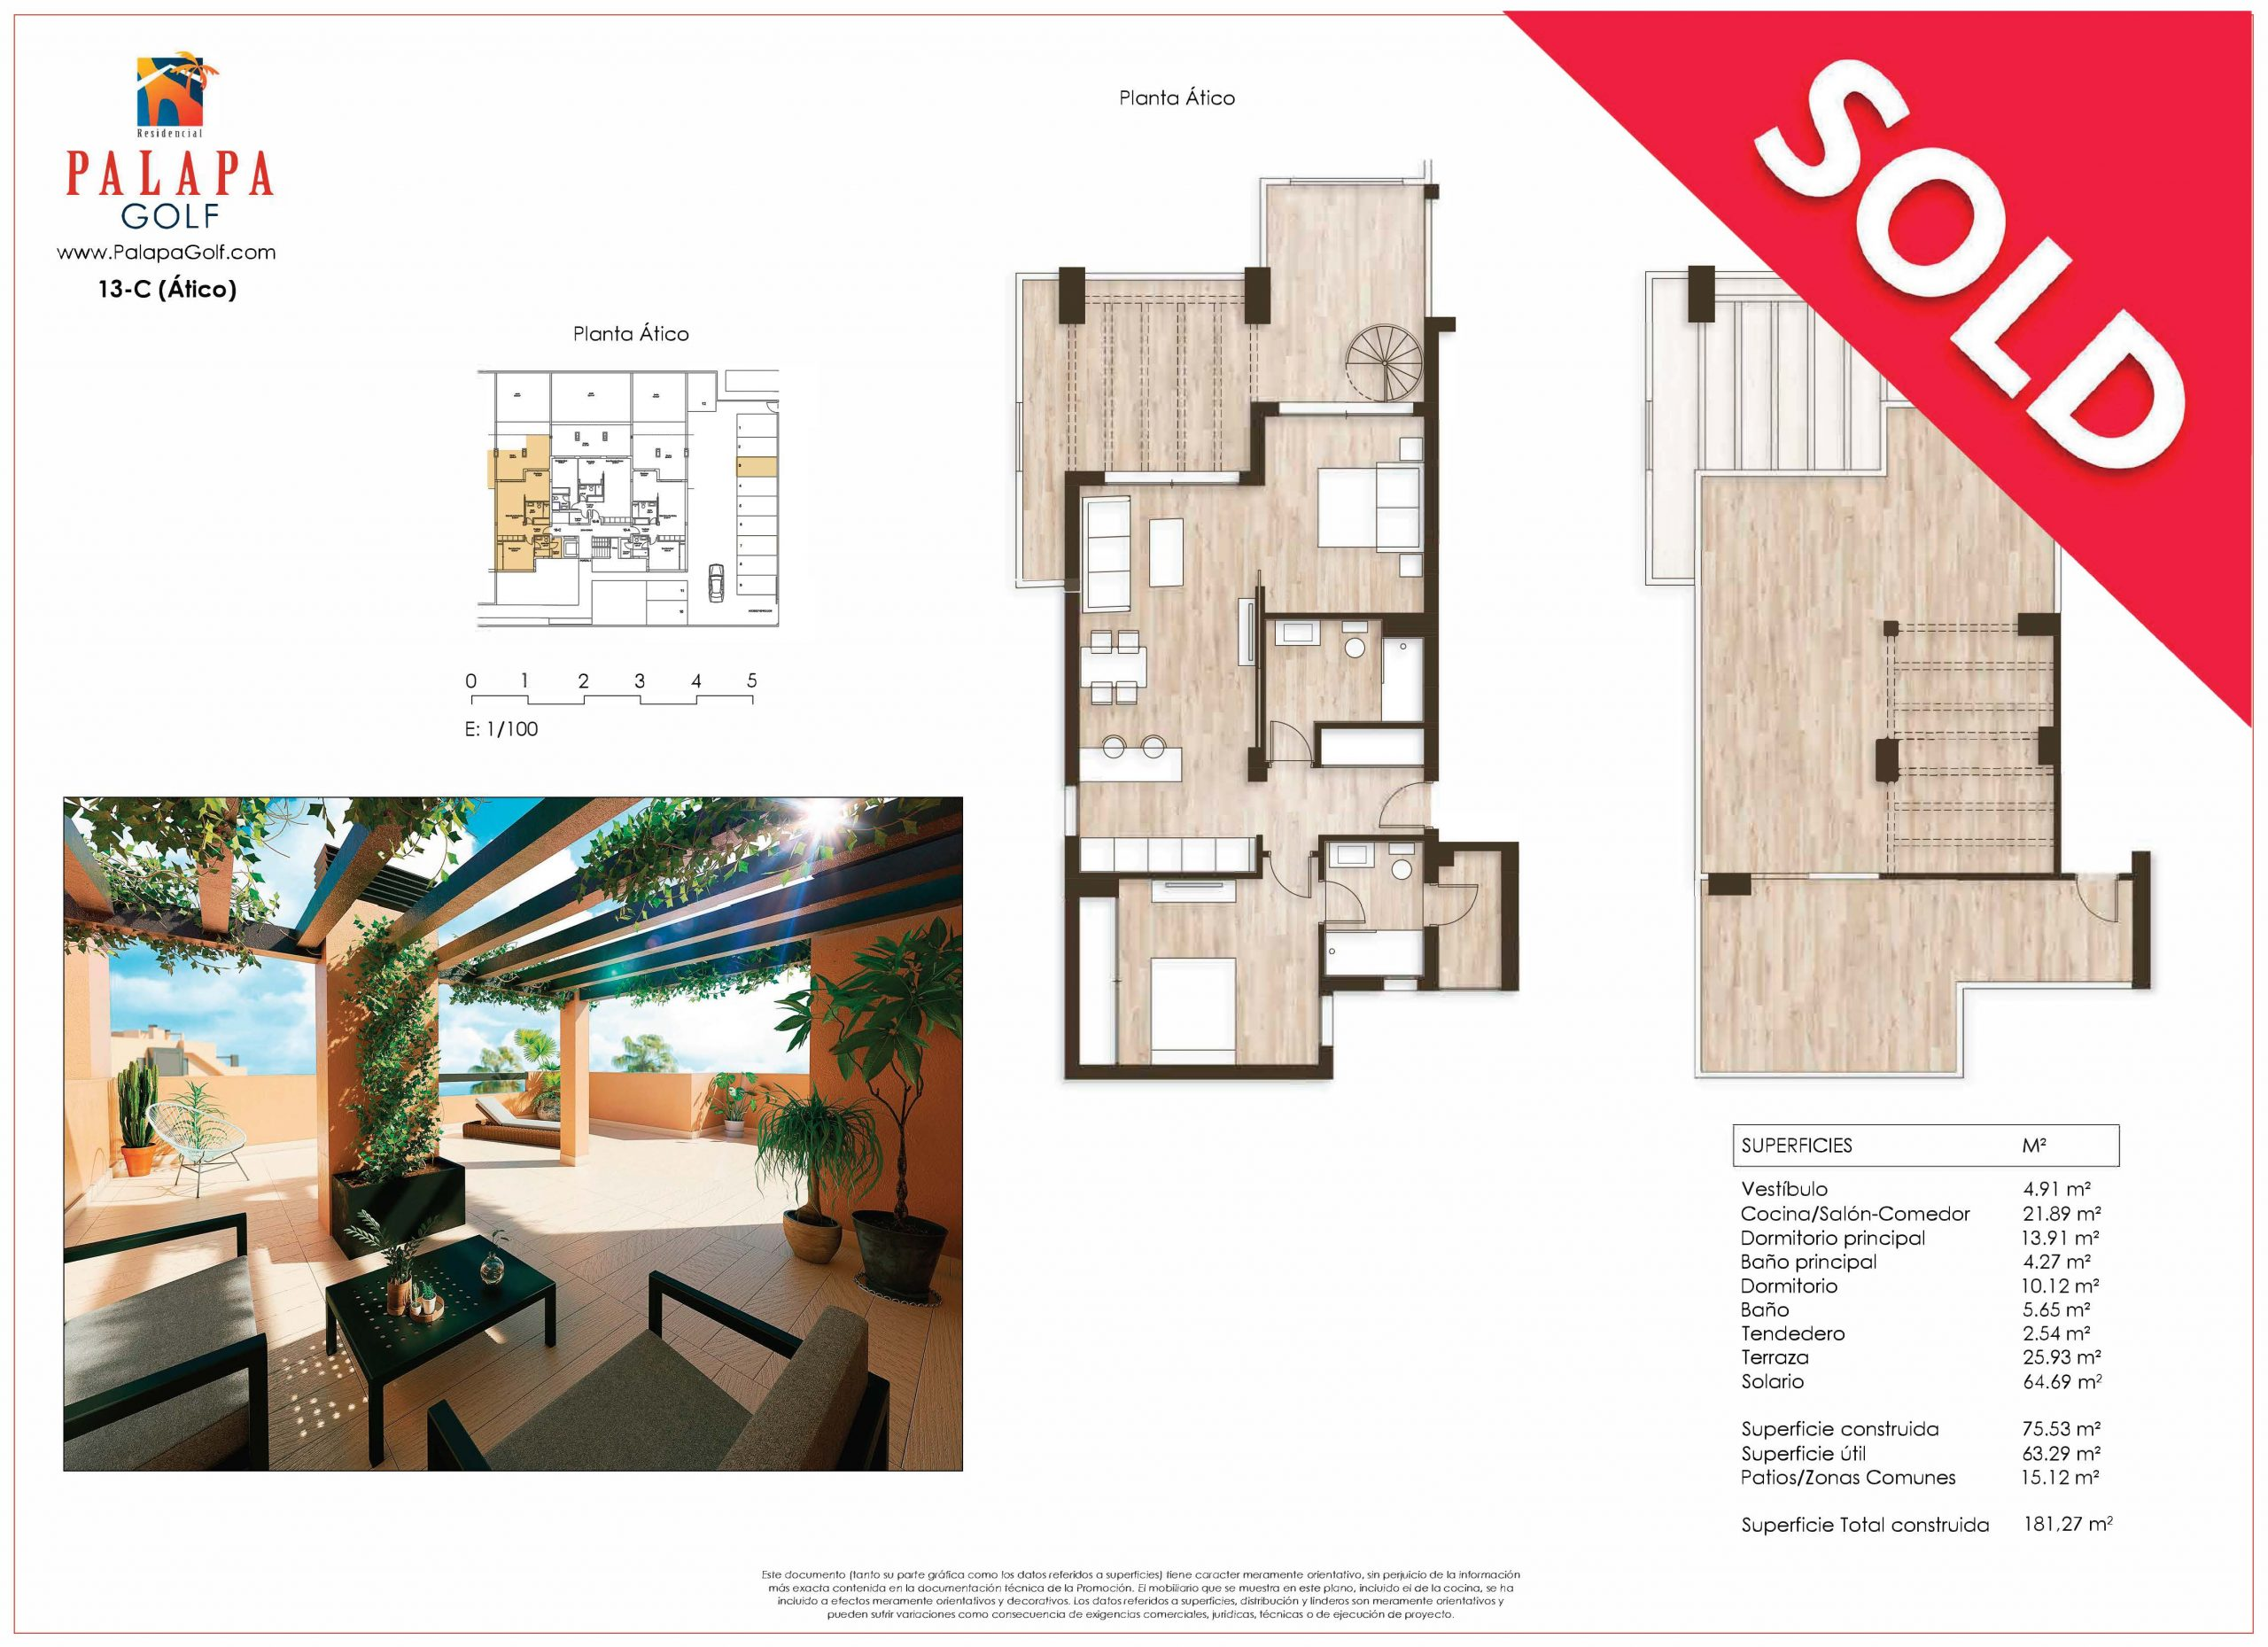 House Plans Phase I Palapa Golf Residencial